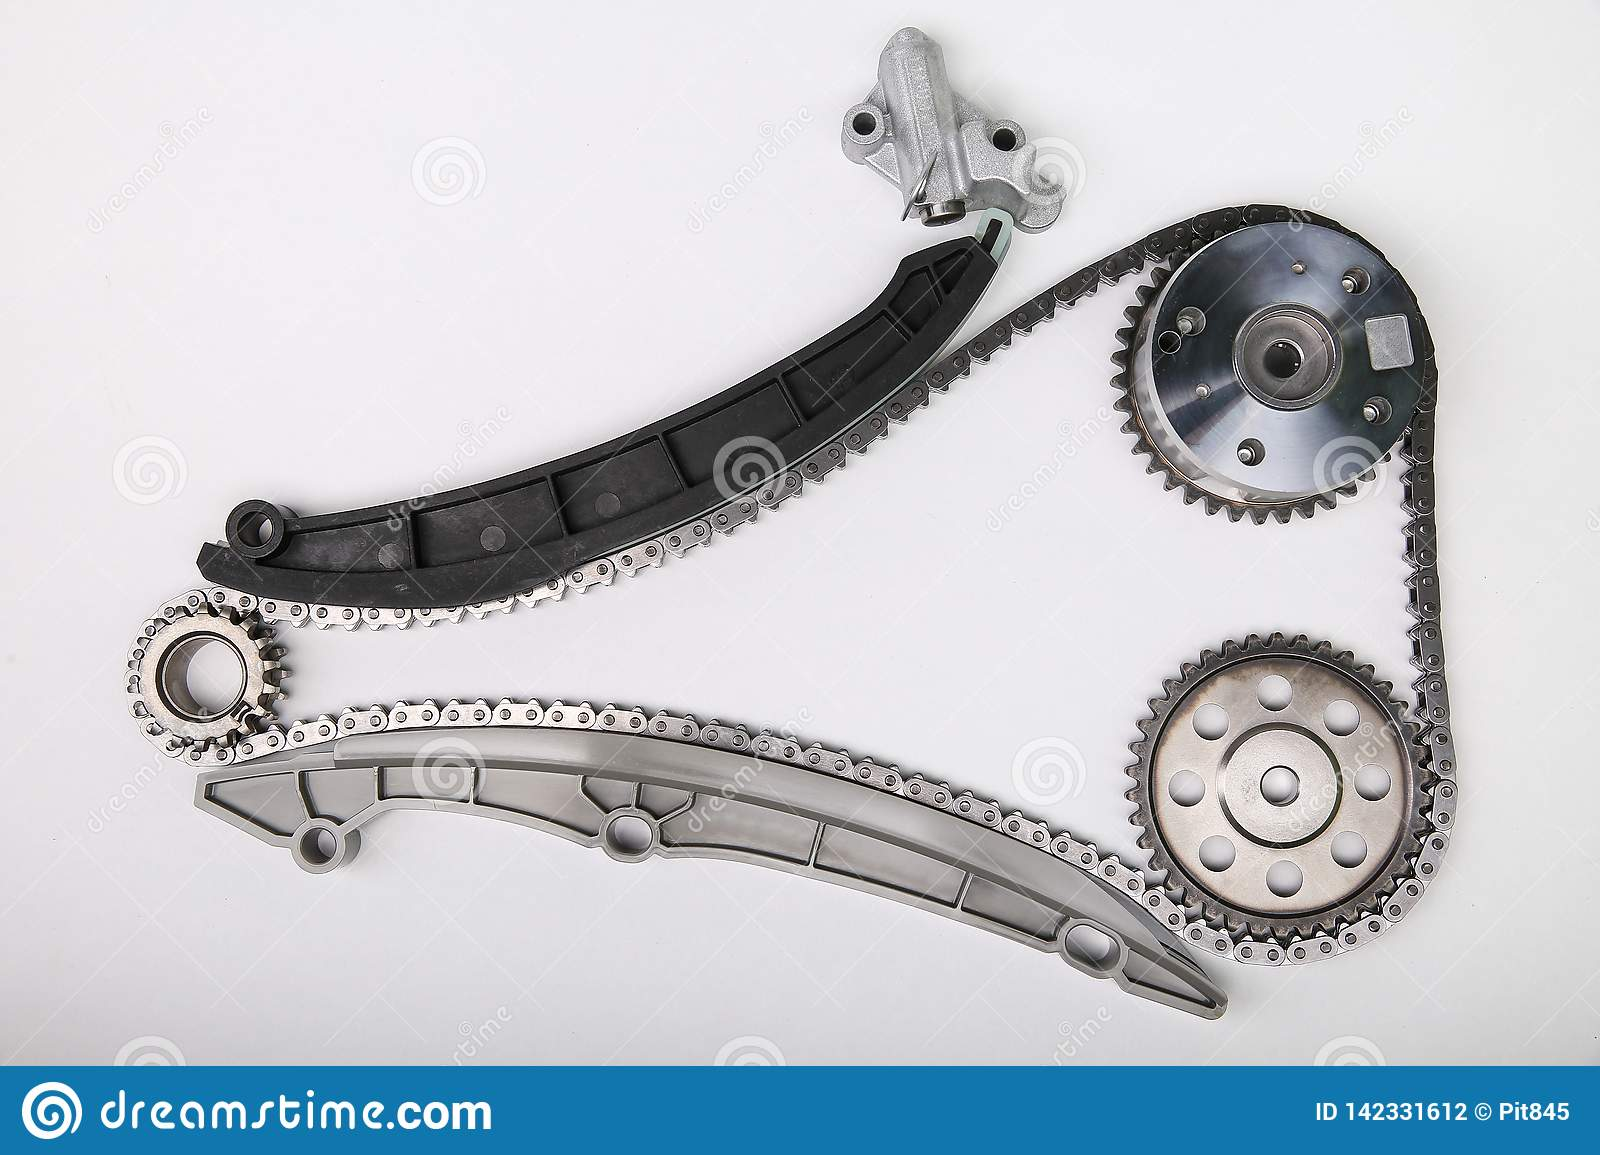 Timing chain kit and timing chain tensioner